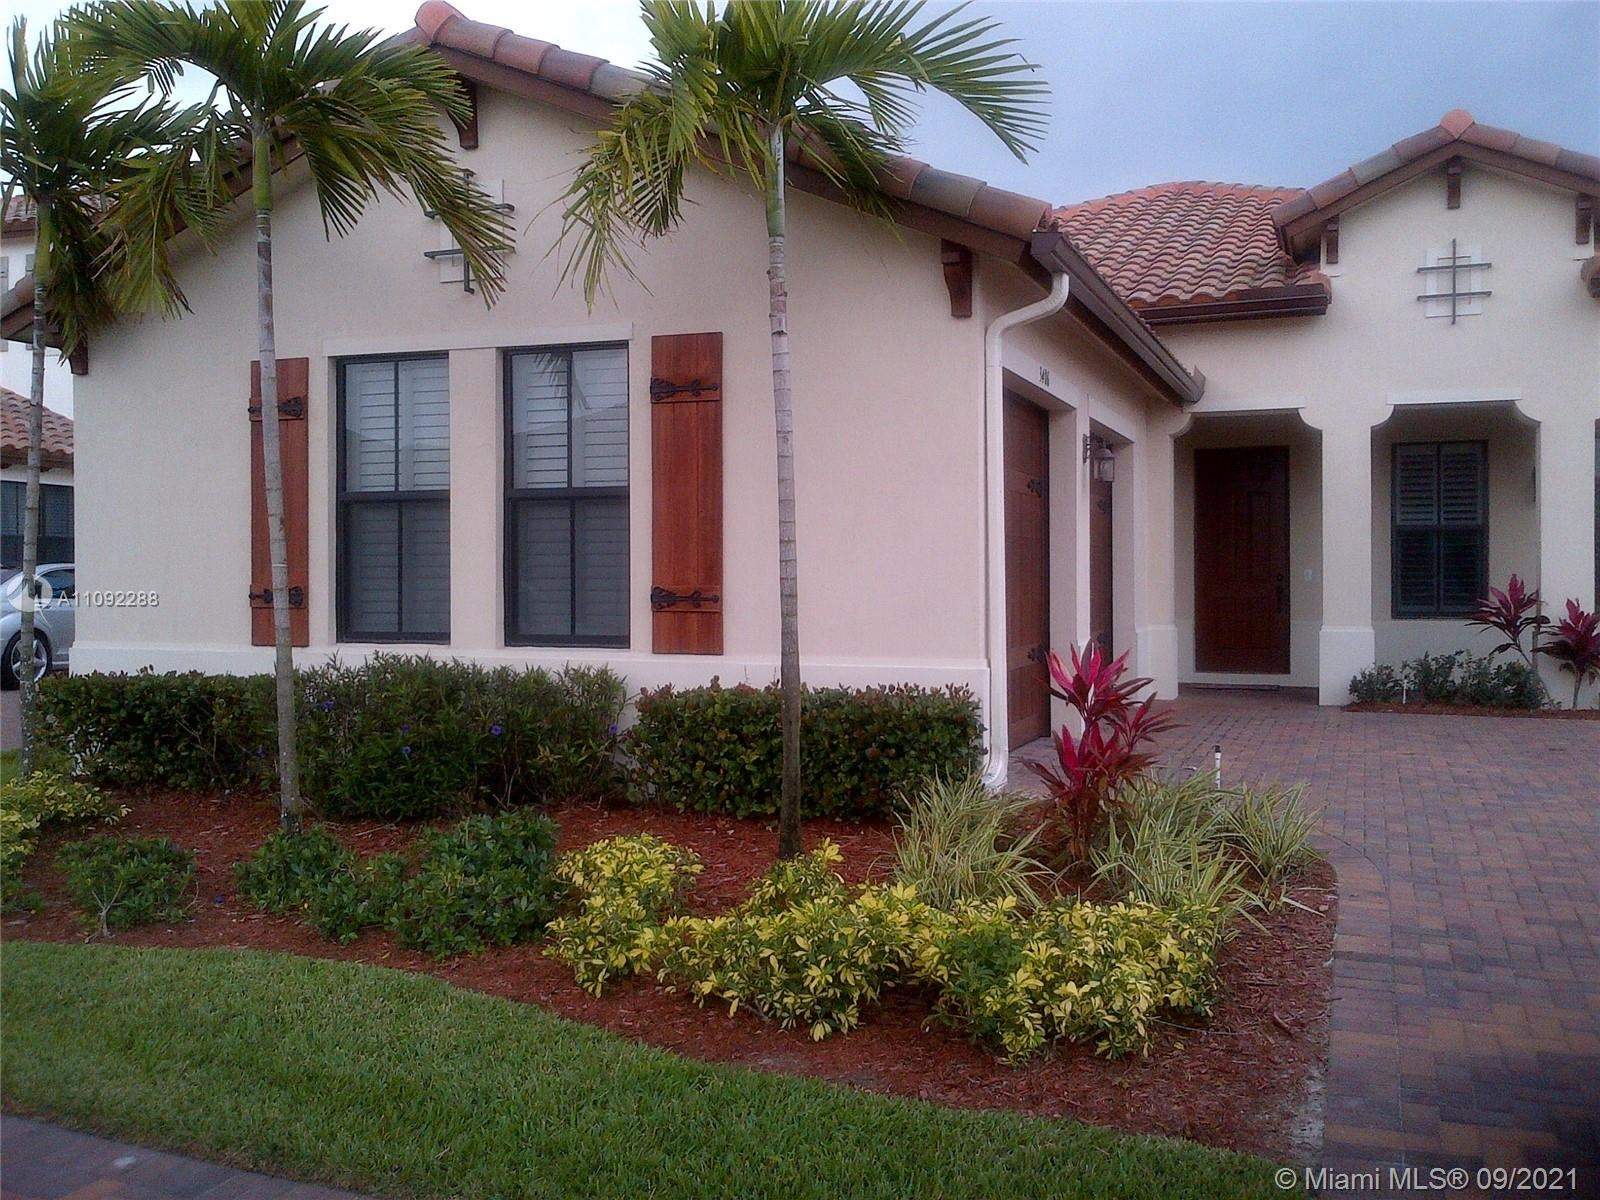 Photo of 3406 NW 83RD WY, Cooper City, FL 33024 (MLS # A11092288)